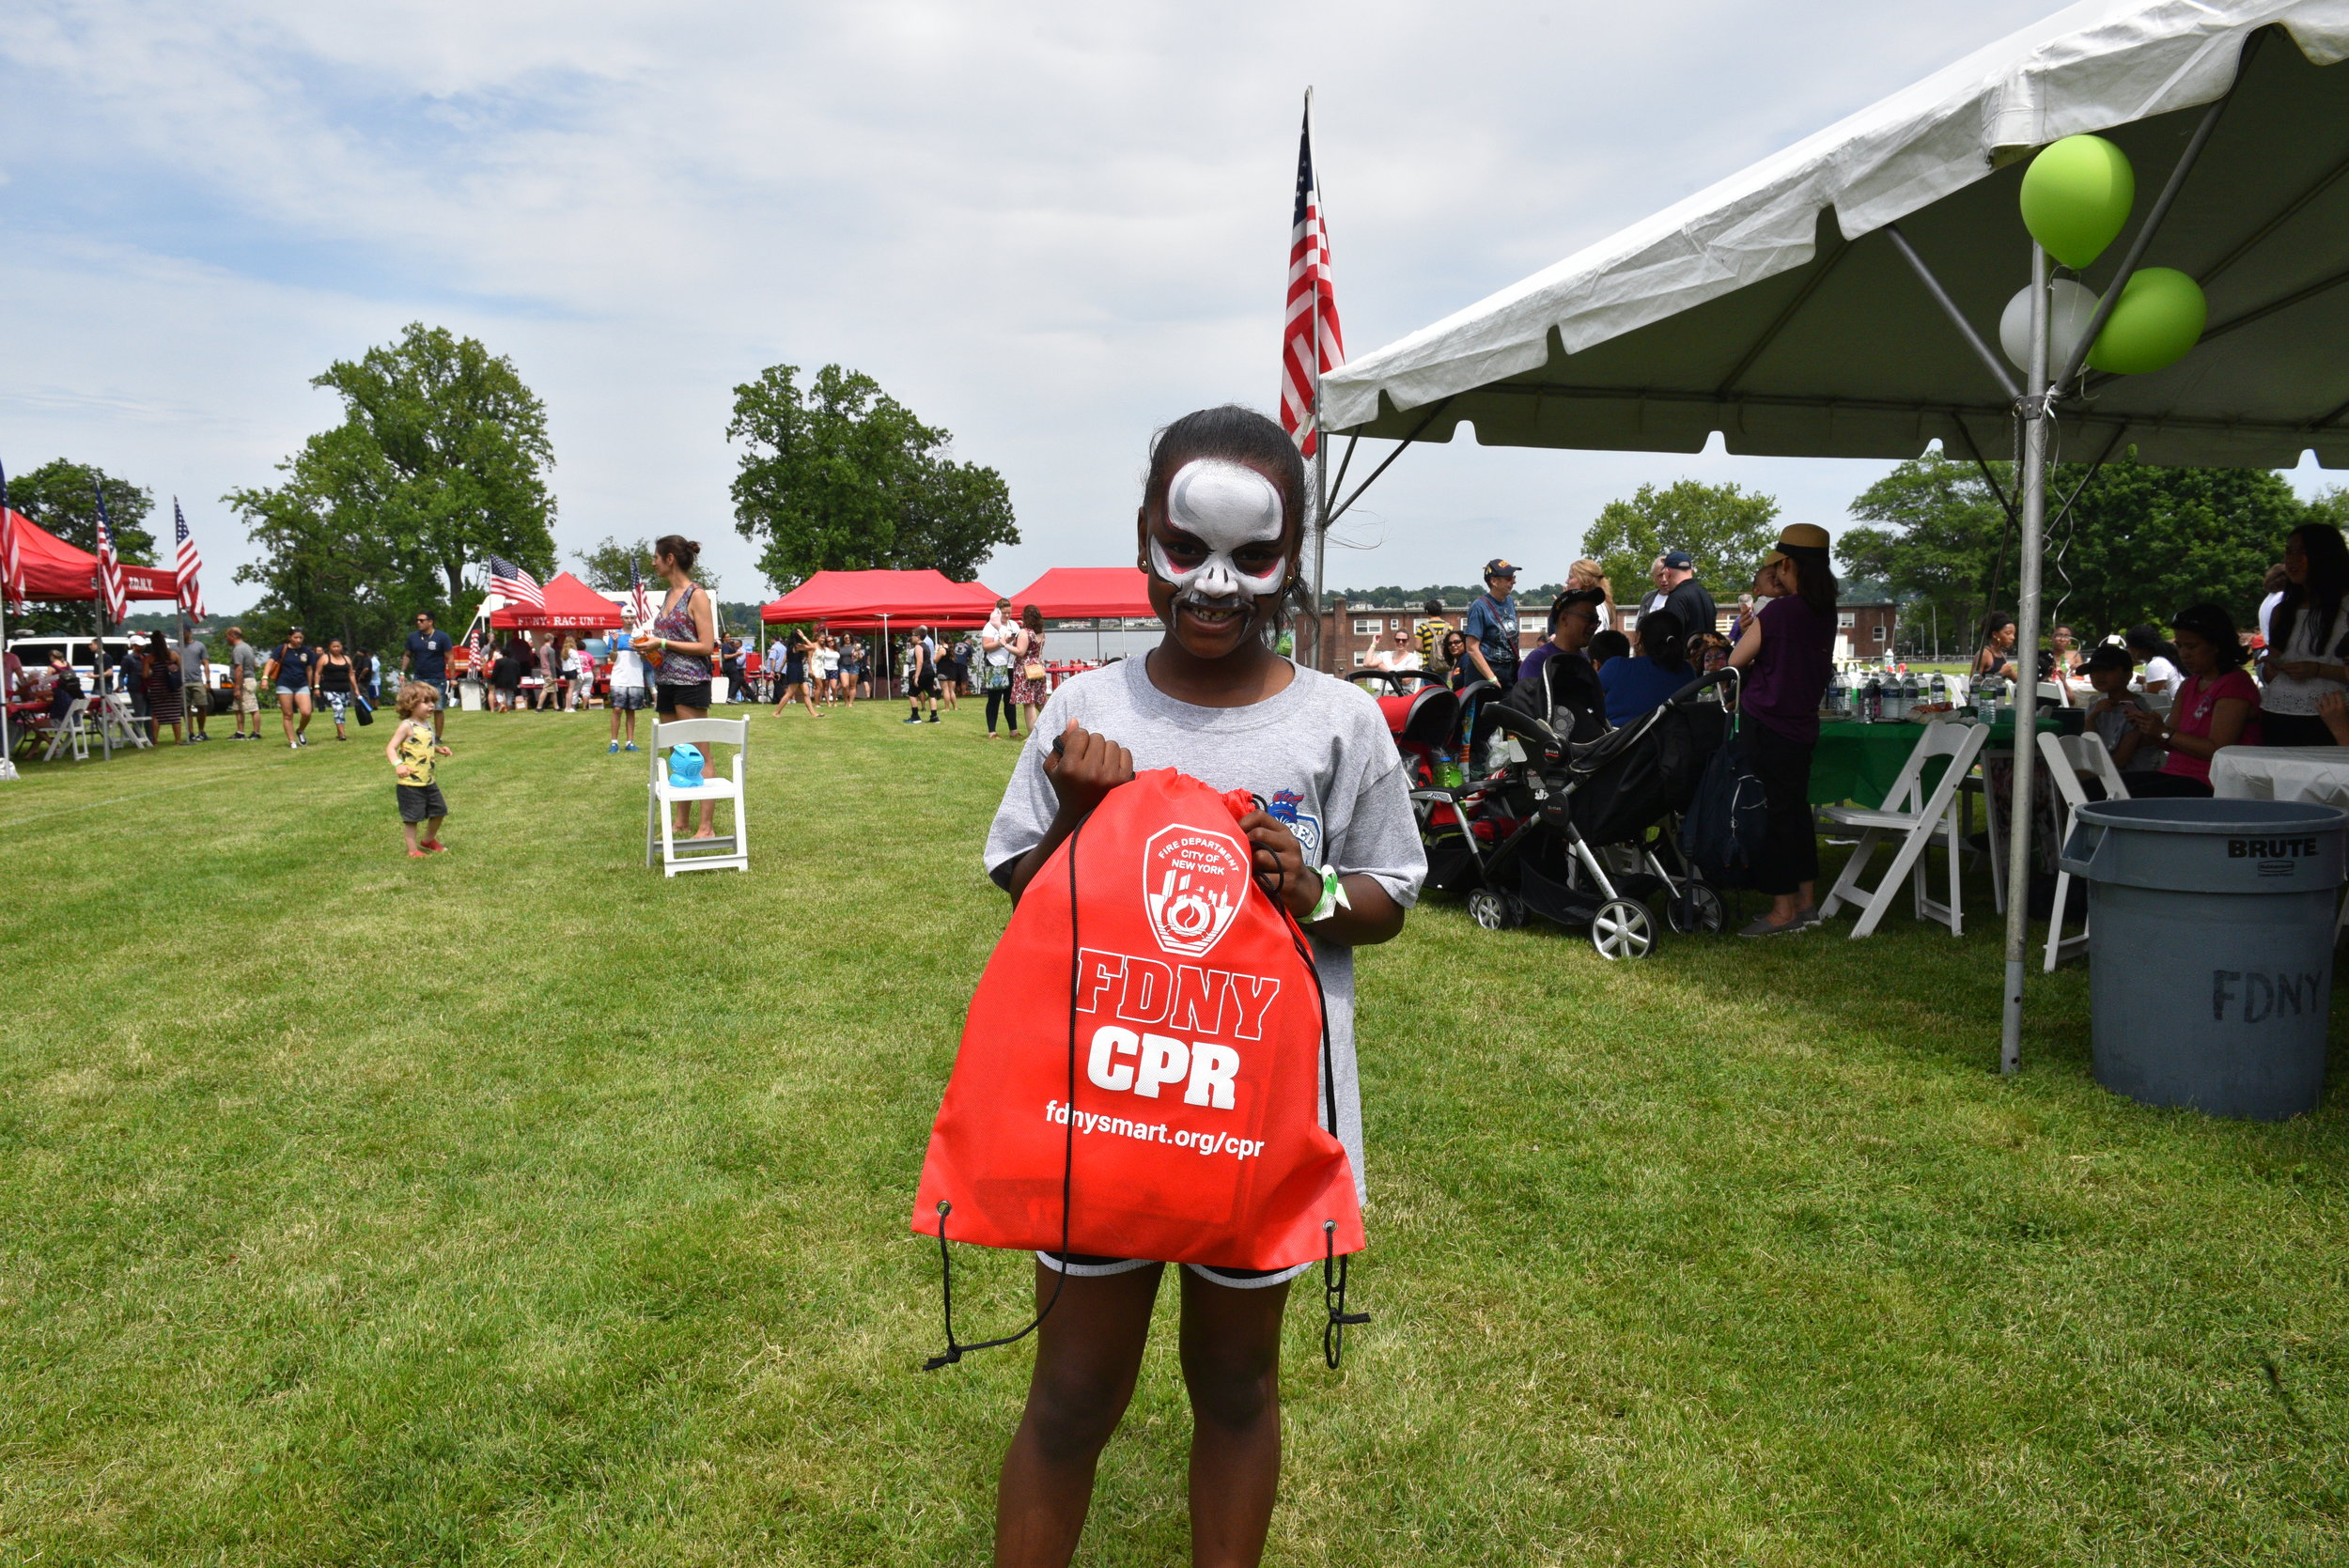 20180609-Fired-Up-Cure-Picnic-KC-088.JPG